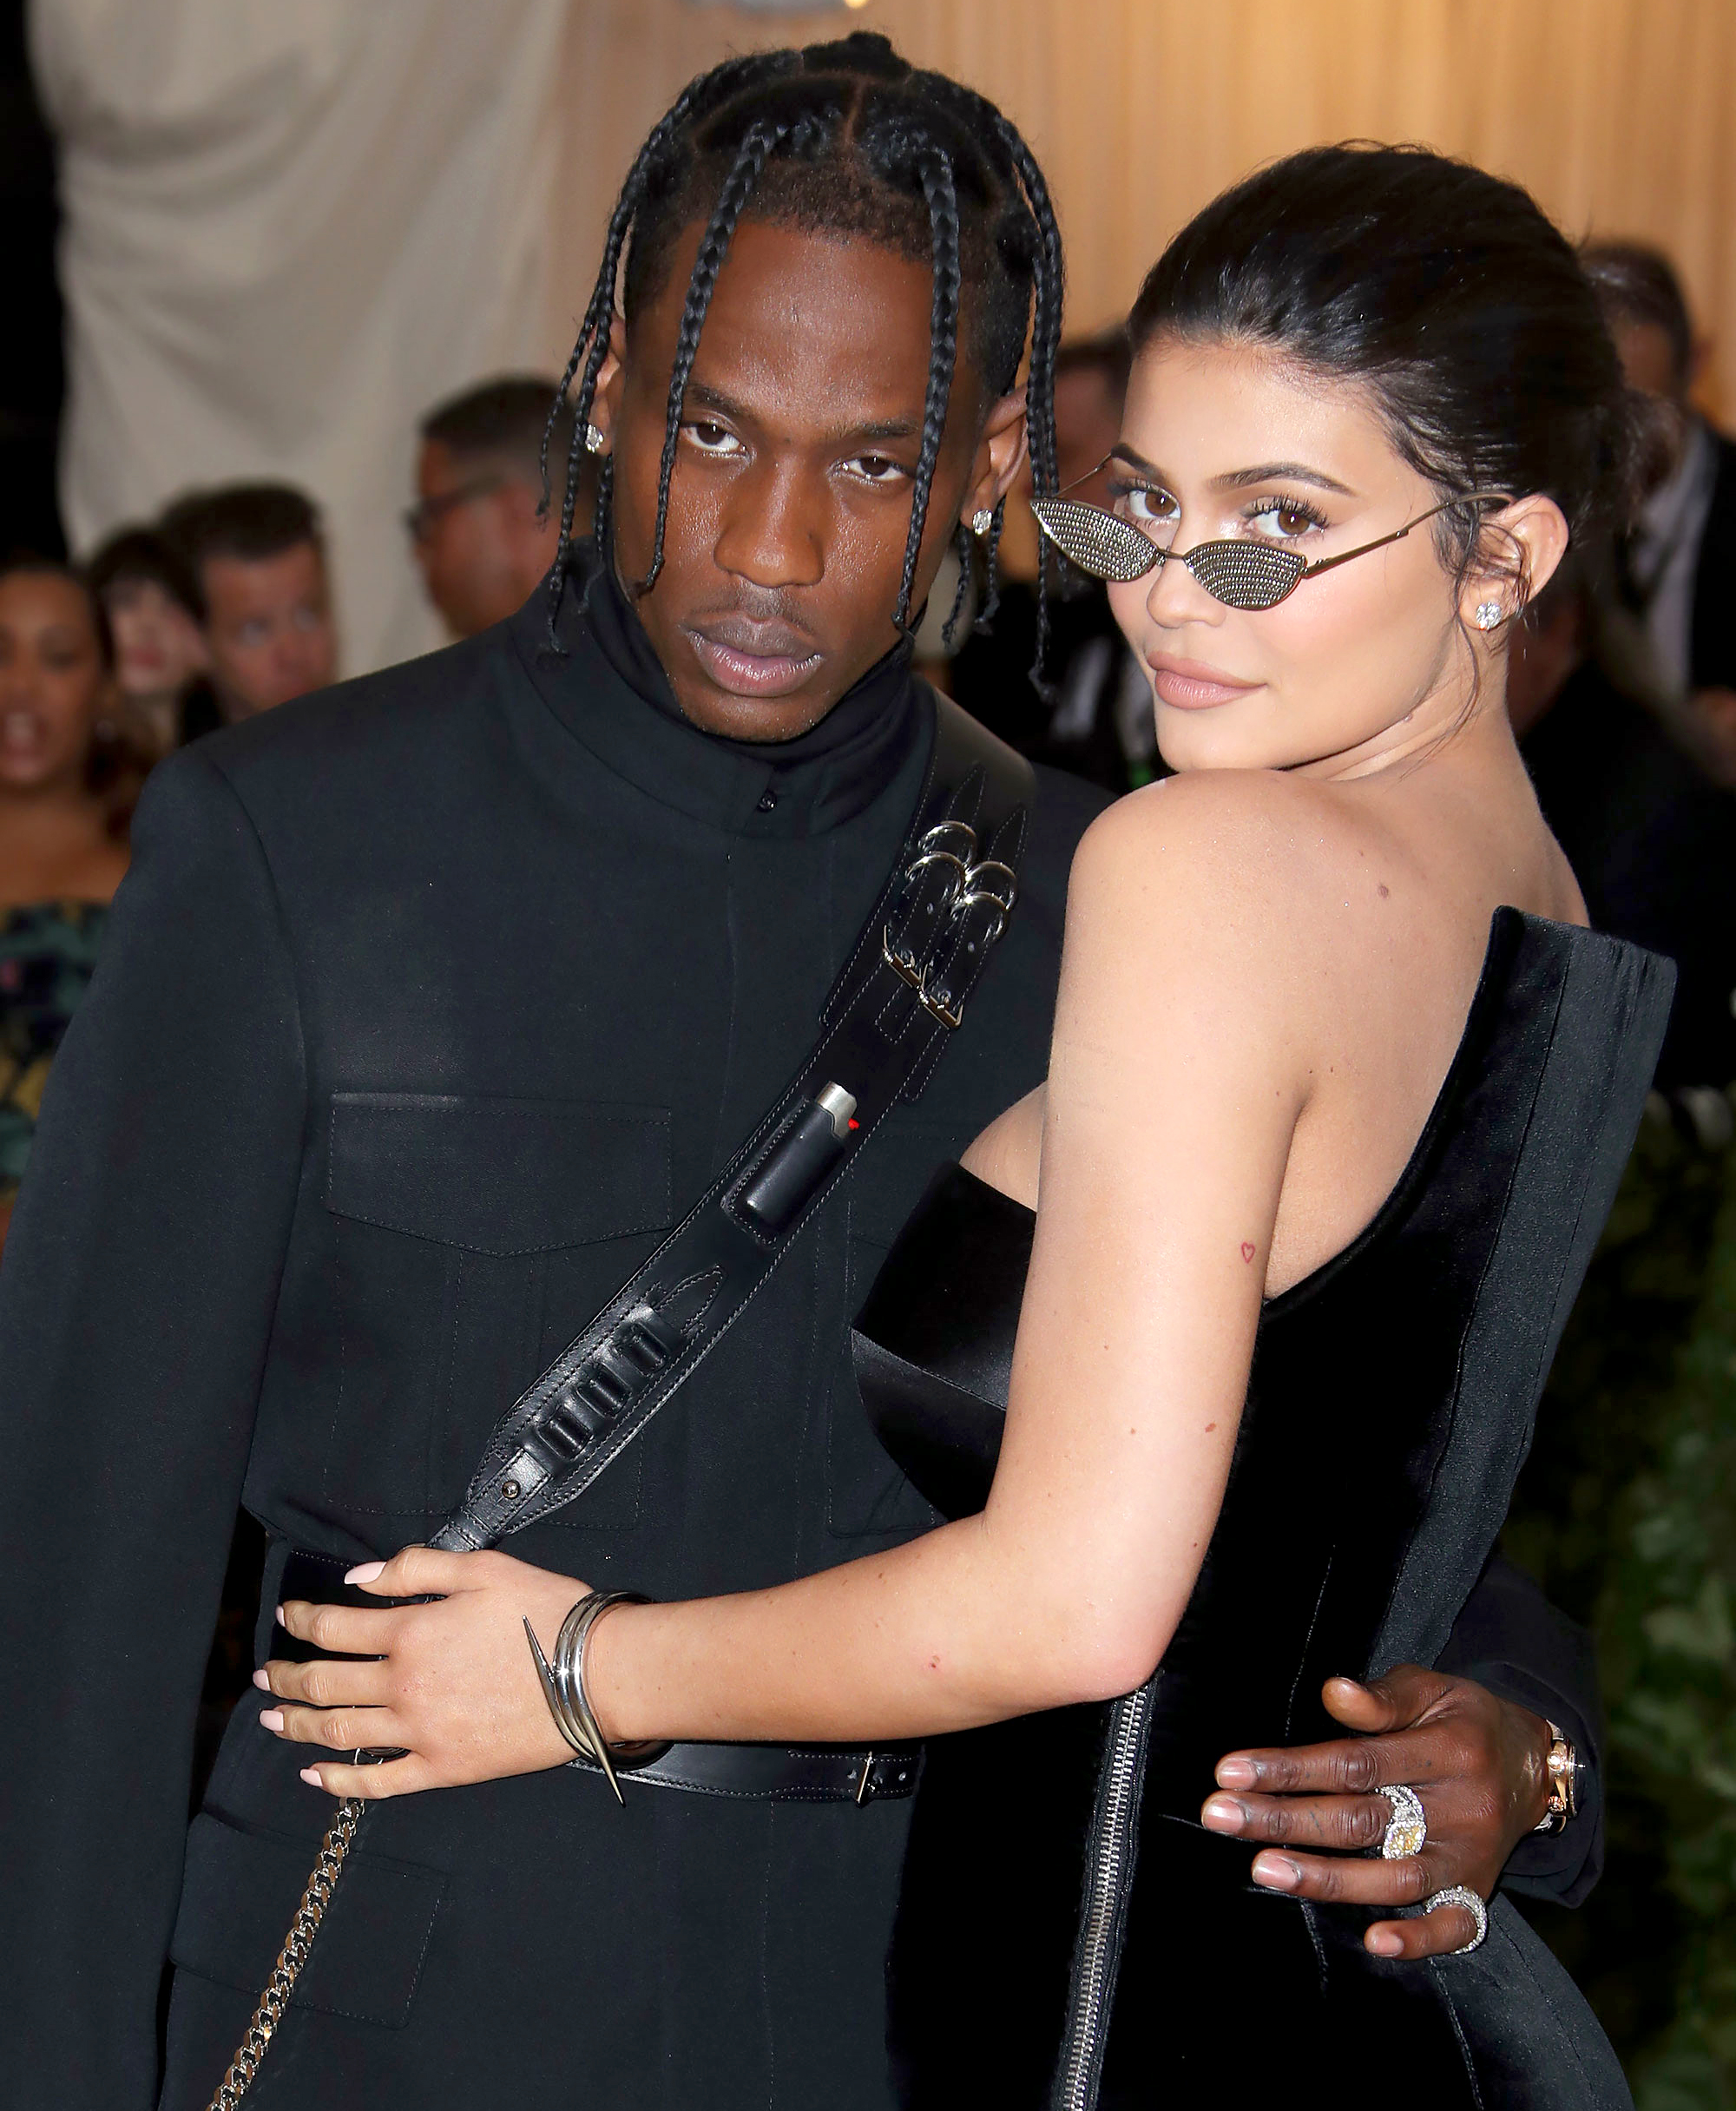 Kylie Jenner Travis Scott Shared A Room During Quarantine Trip